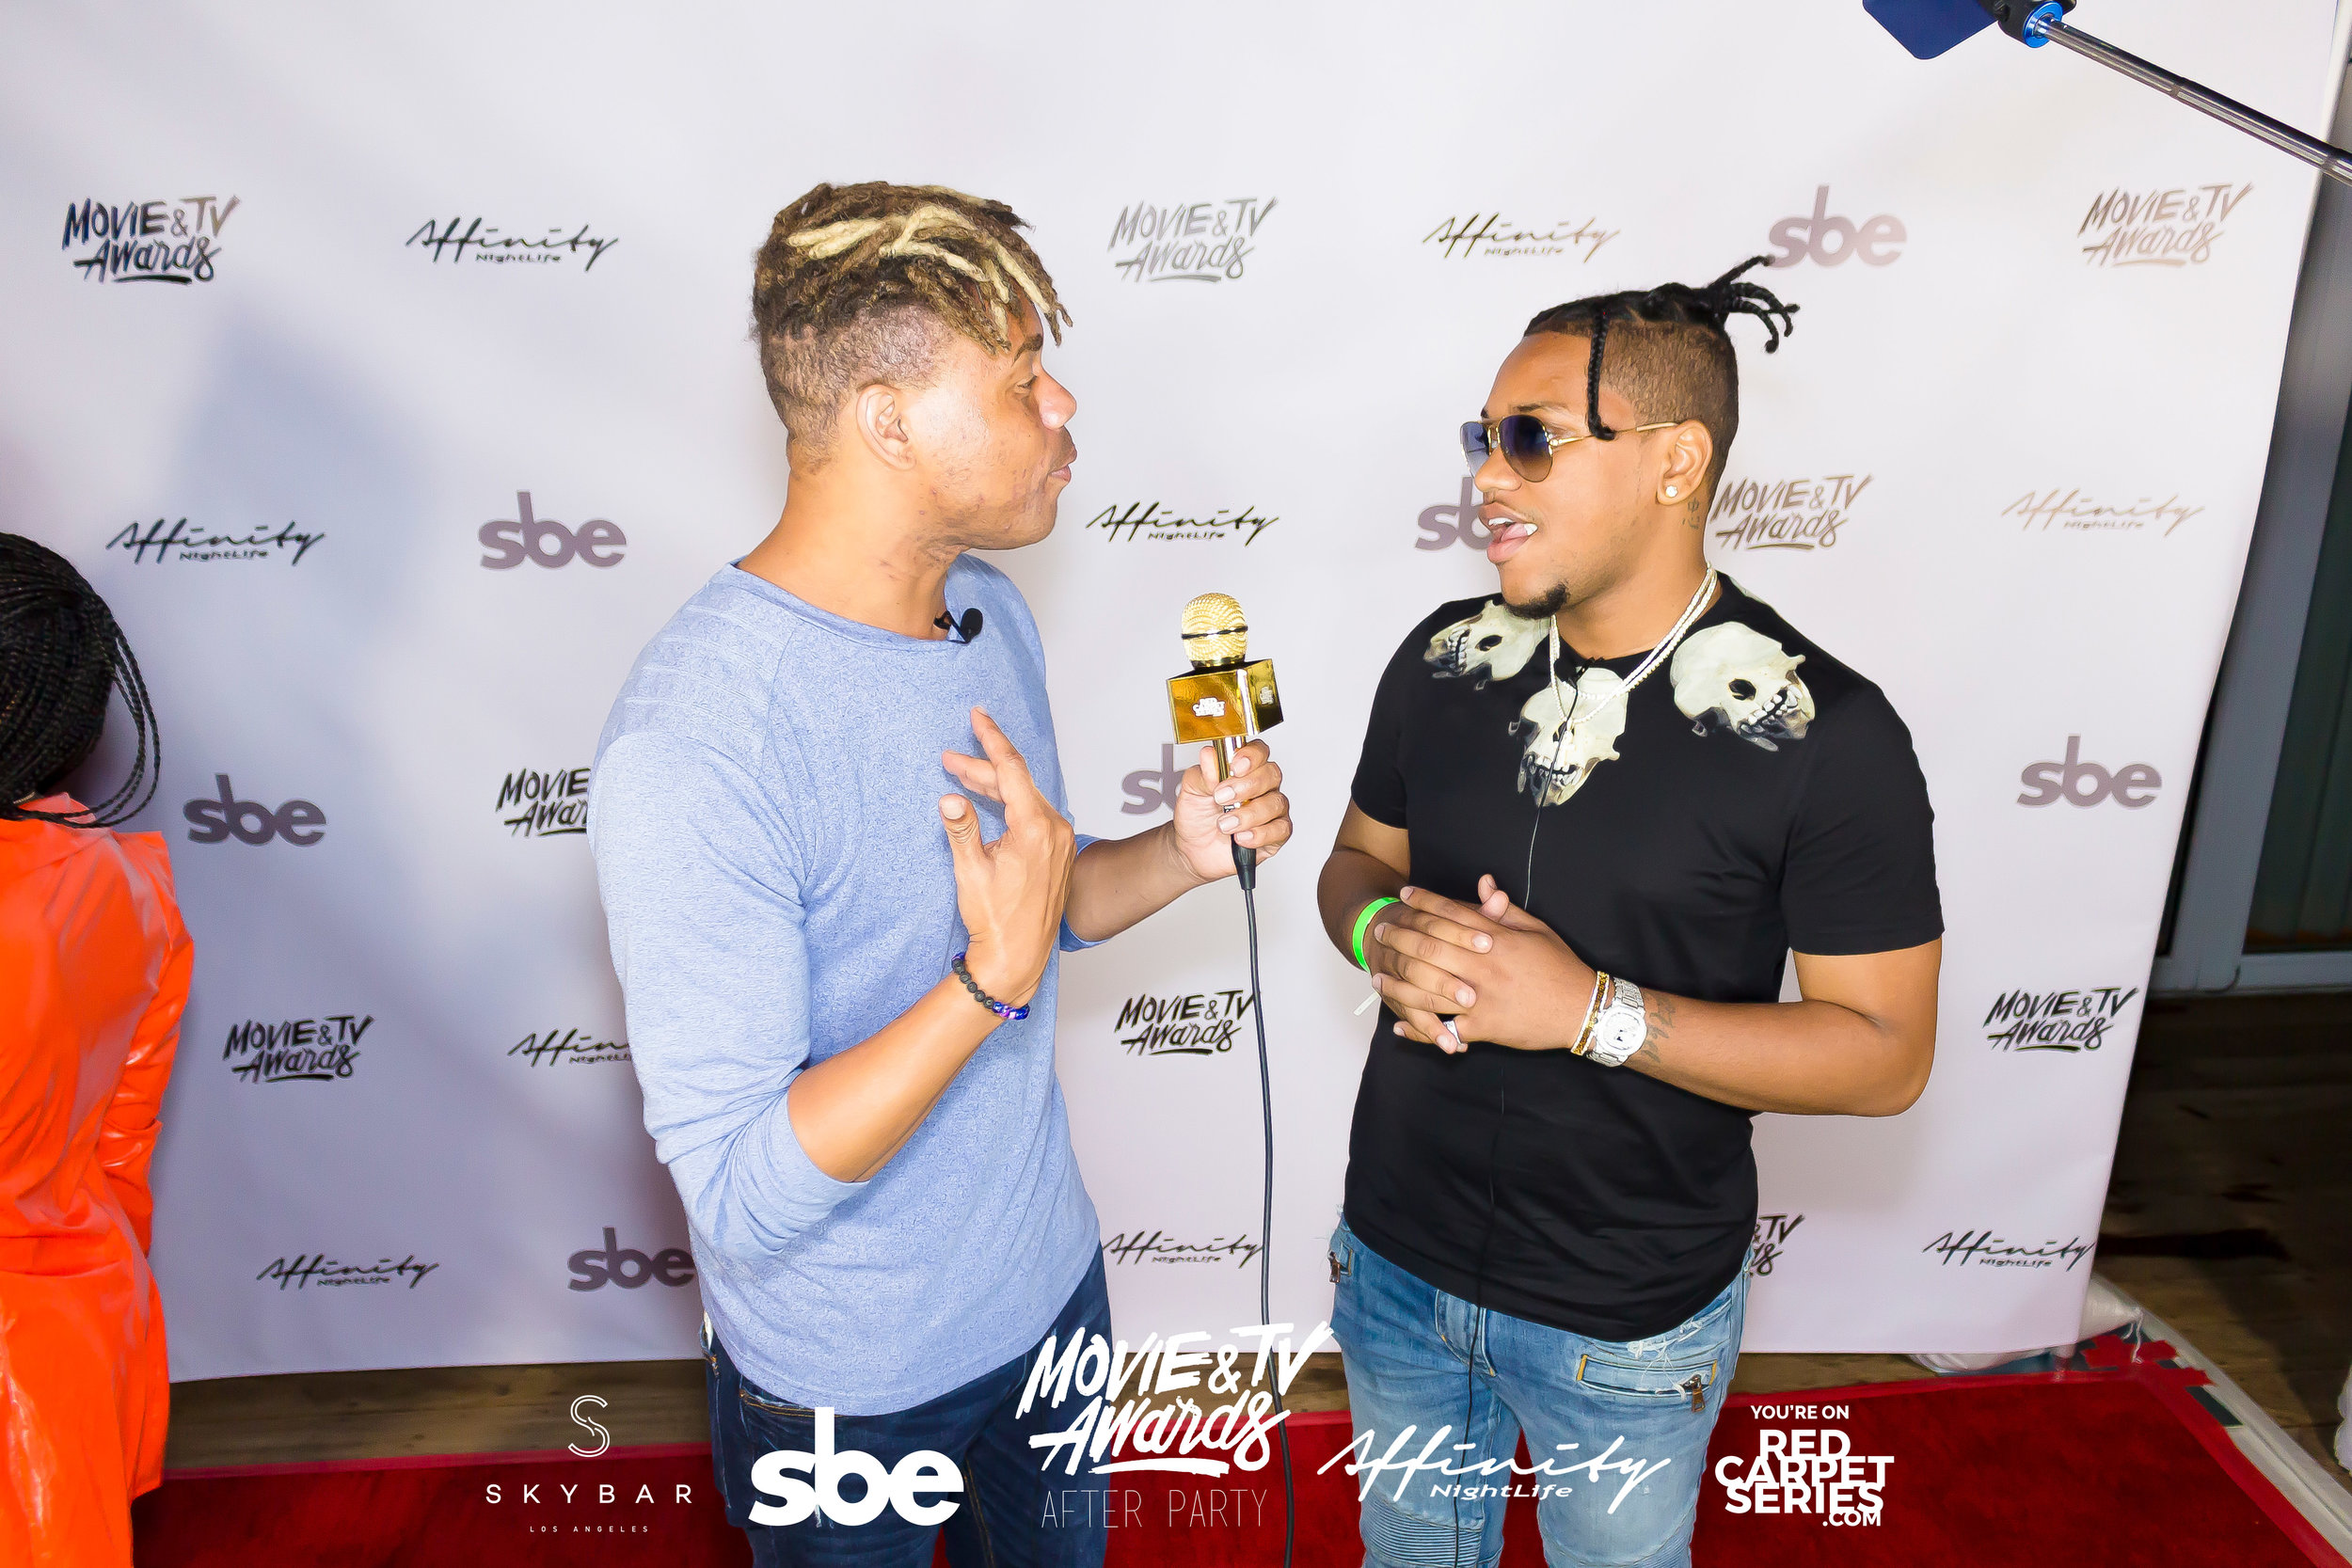 Affinity Nightlife MTV Movie & TV Awards After Party - Skybar at Mondrian - 06-15-19 - Vol. 1_143.jpg